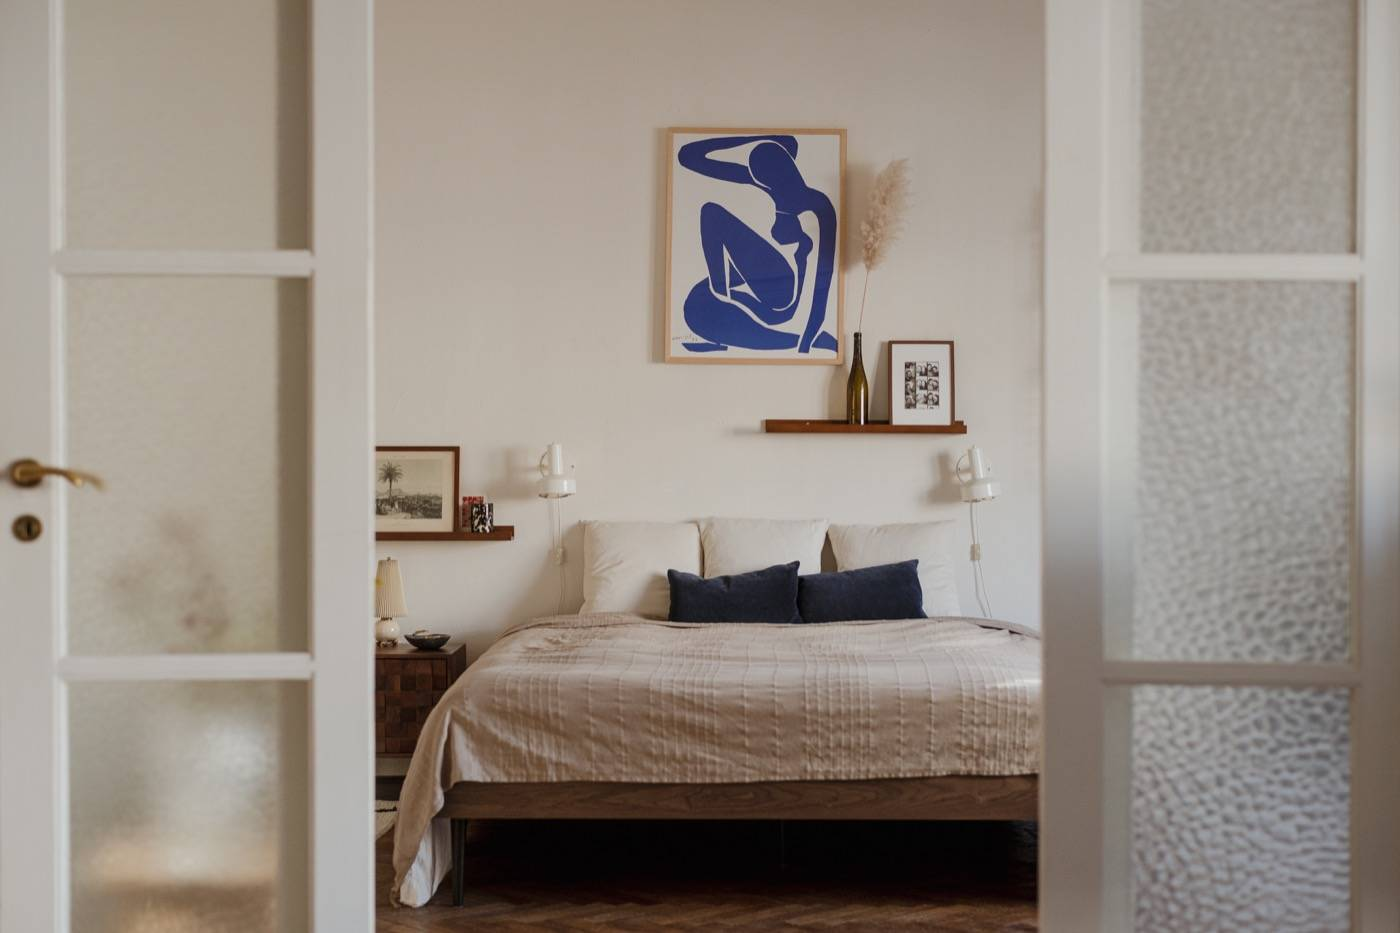 How to style a perfectly cozy bedroom? - de.noo.ma